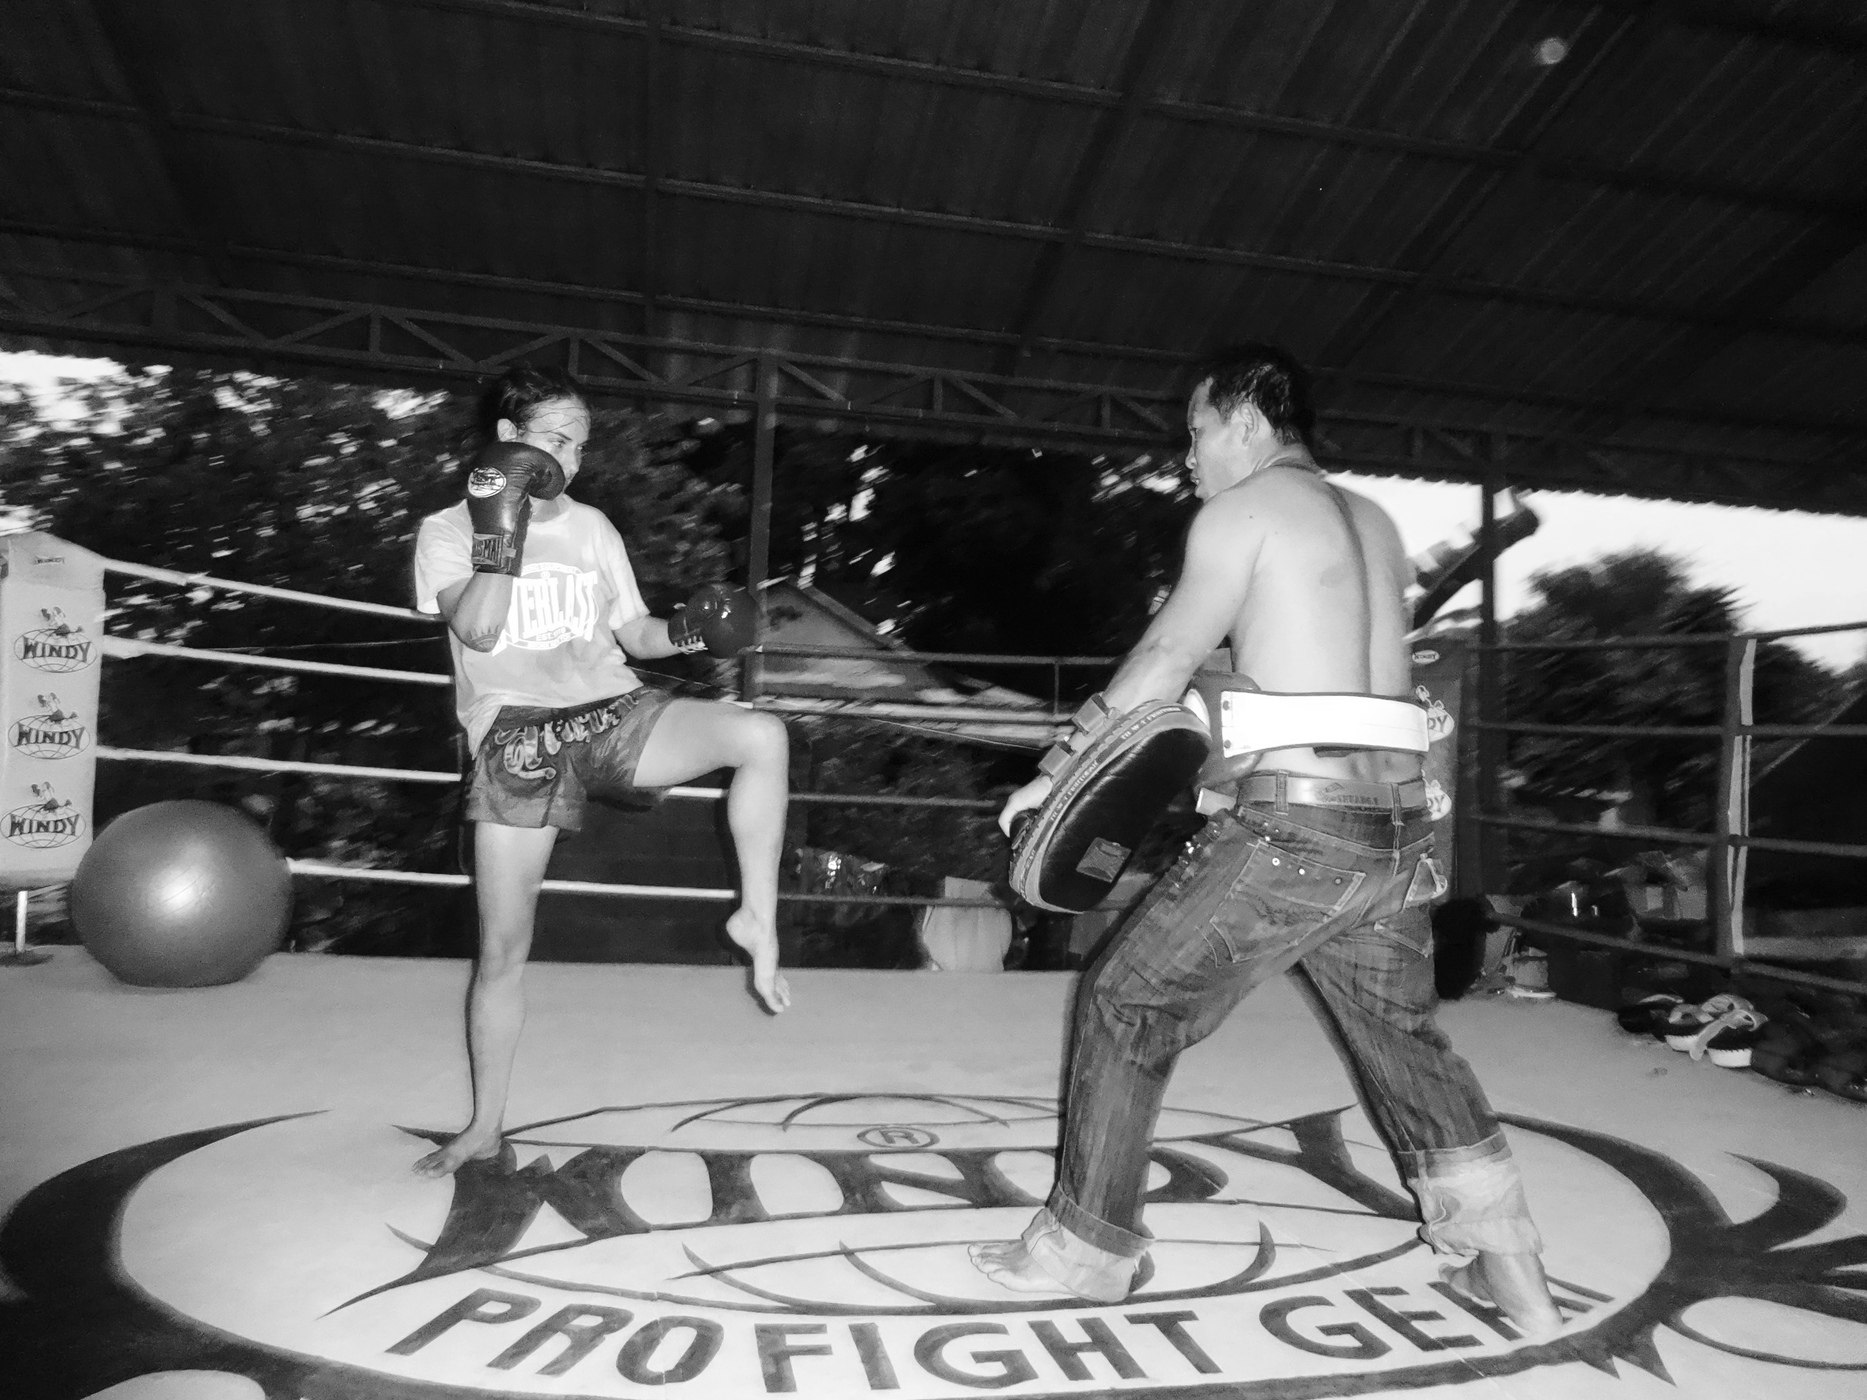 Sylvie on Pads - Preparing for Kick - O Meekhun Pattaya